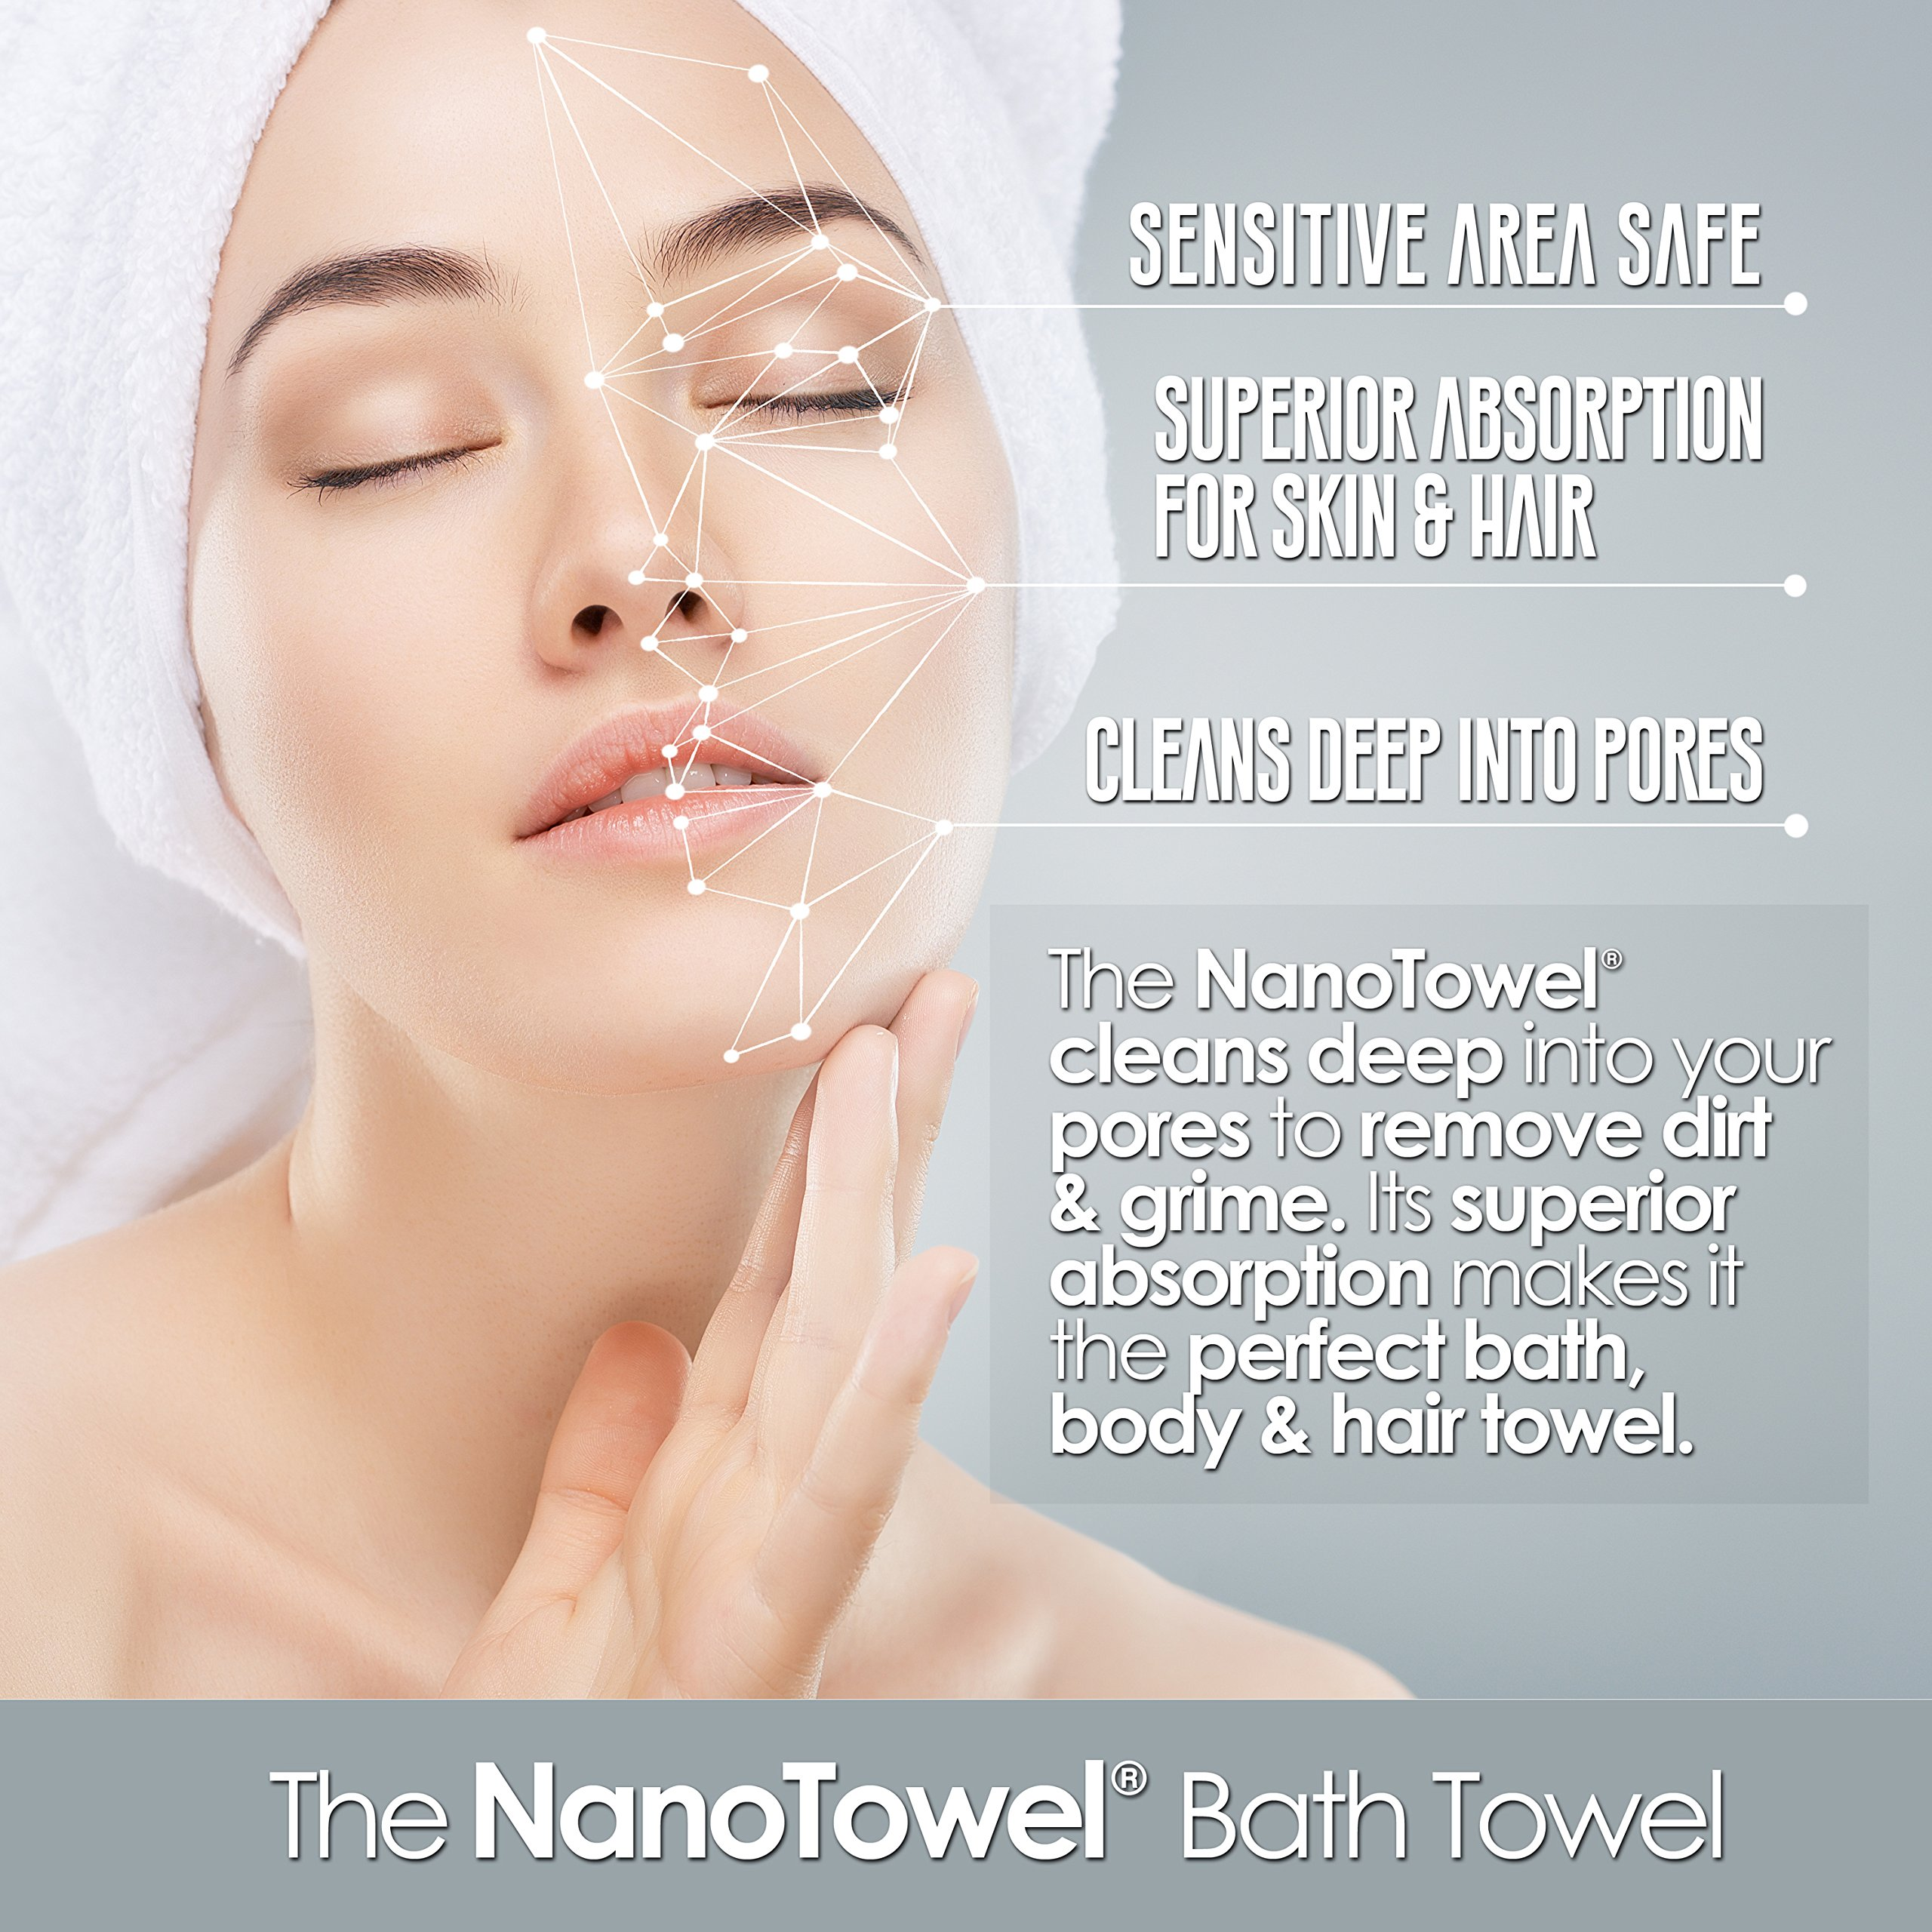 Nano Towels Body Bath & Shower Towel. Huge & Super Absorbent. Wipes Away Dirt, Oil and Cosmetics. Use As Your Sports, Travel, Fitness, Kids, Beauty, Spa Or Salon Luxury Towel. 30 x 55''. by Life Miracle (Image #3)